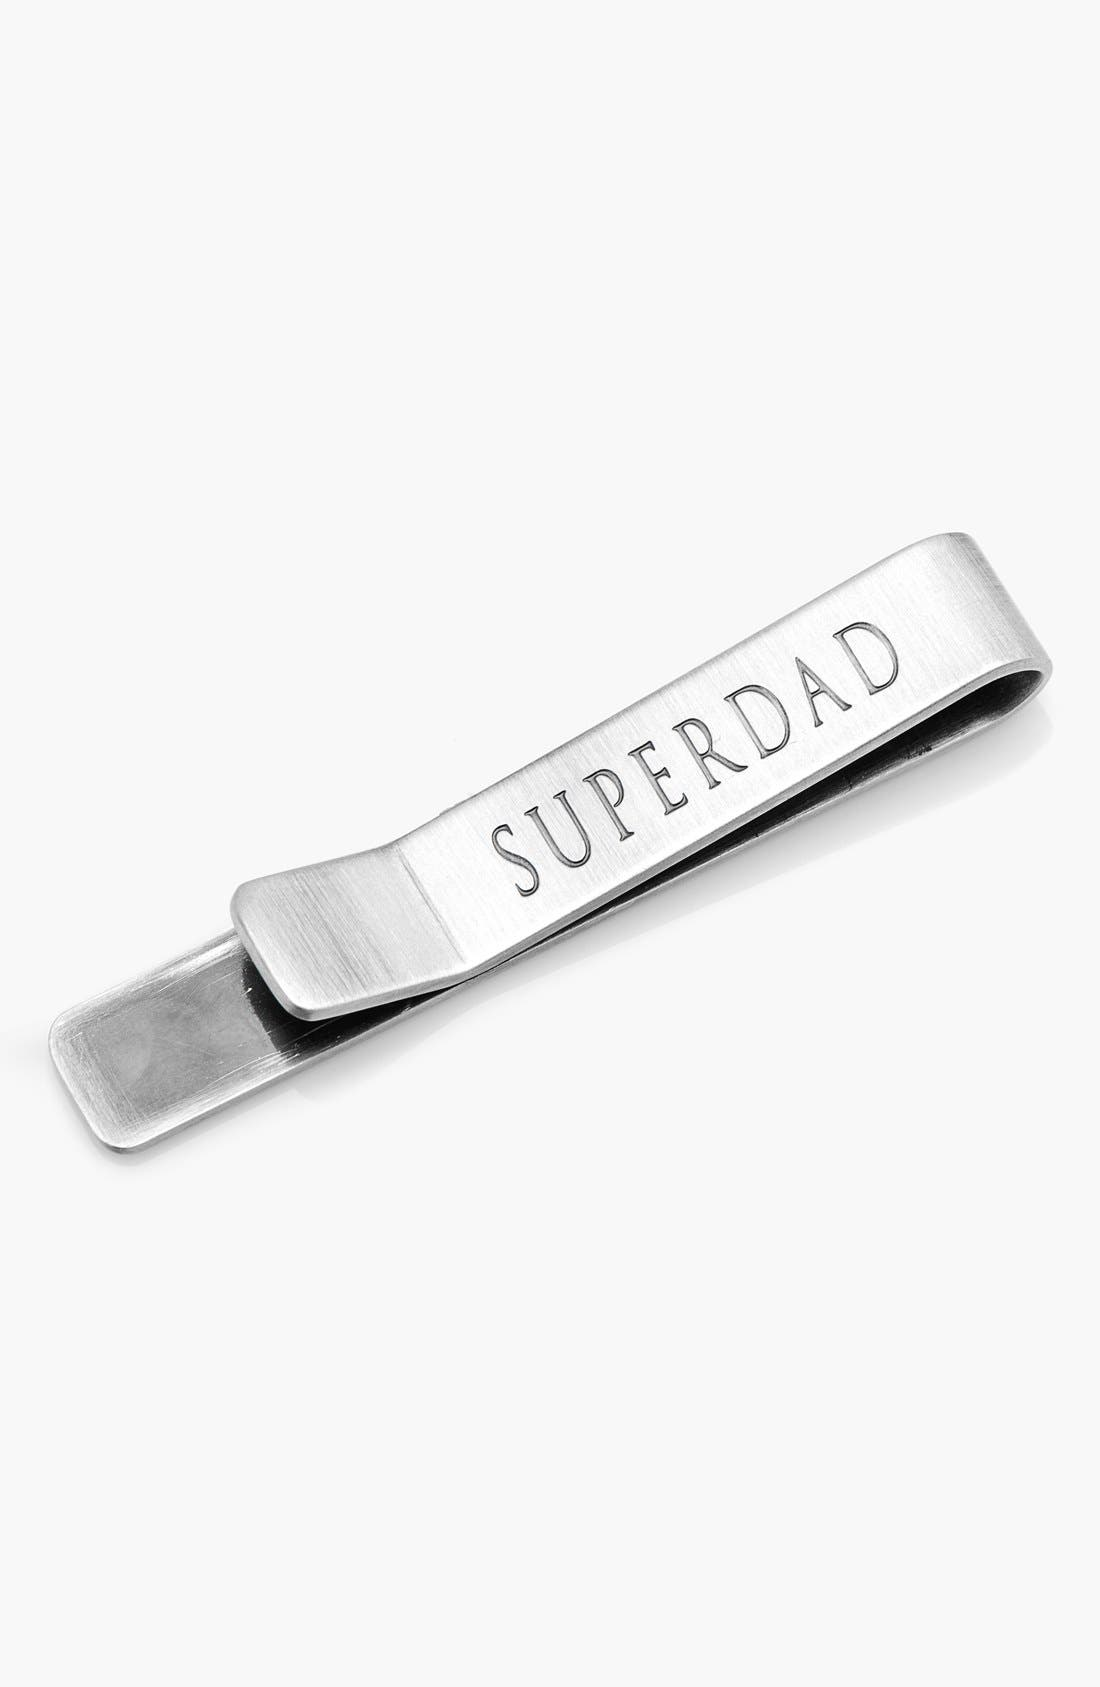 OX AND BULL TRADING CO. Superdad Tie Bar